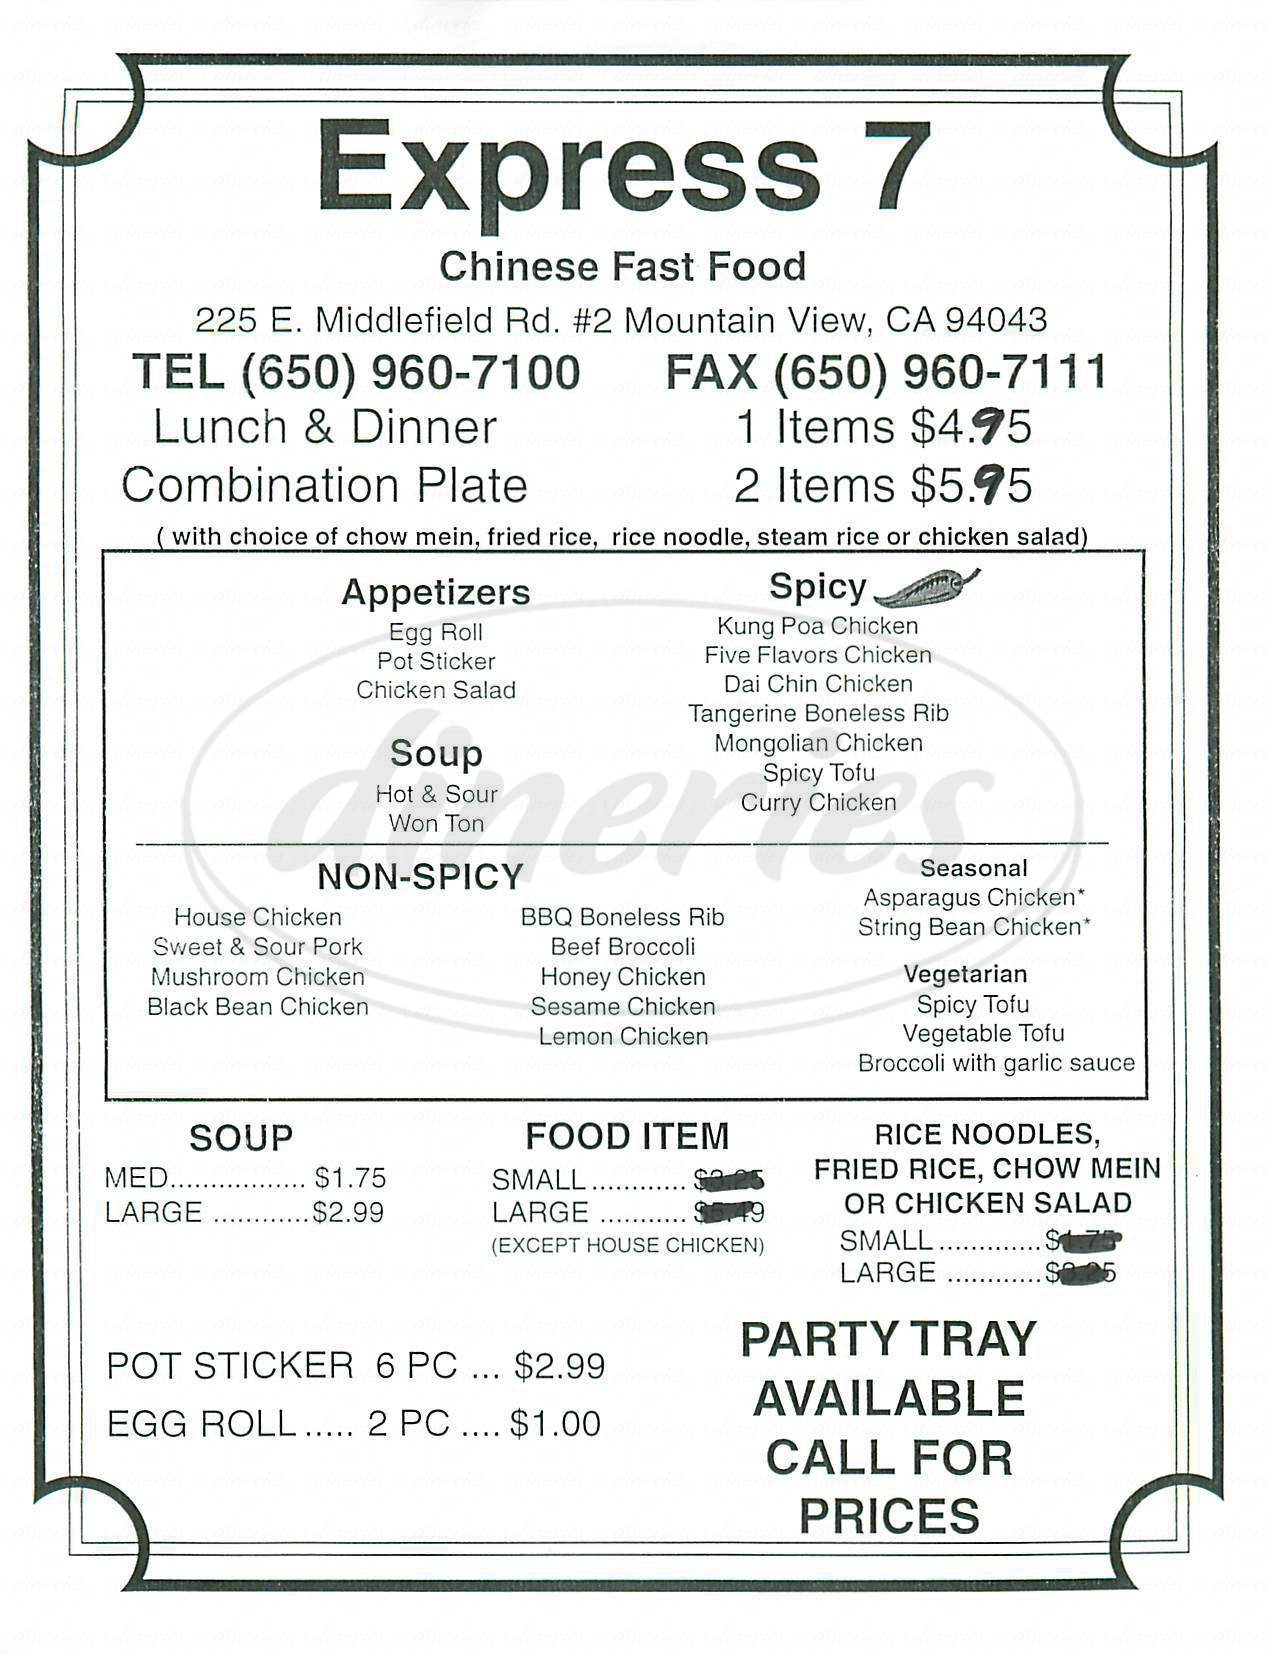 menu for Express 7 Chinese Fast Food